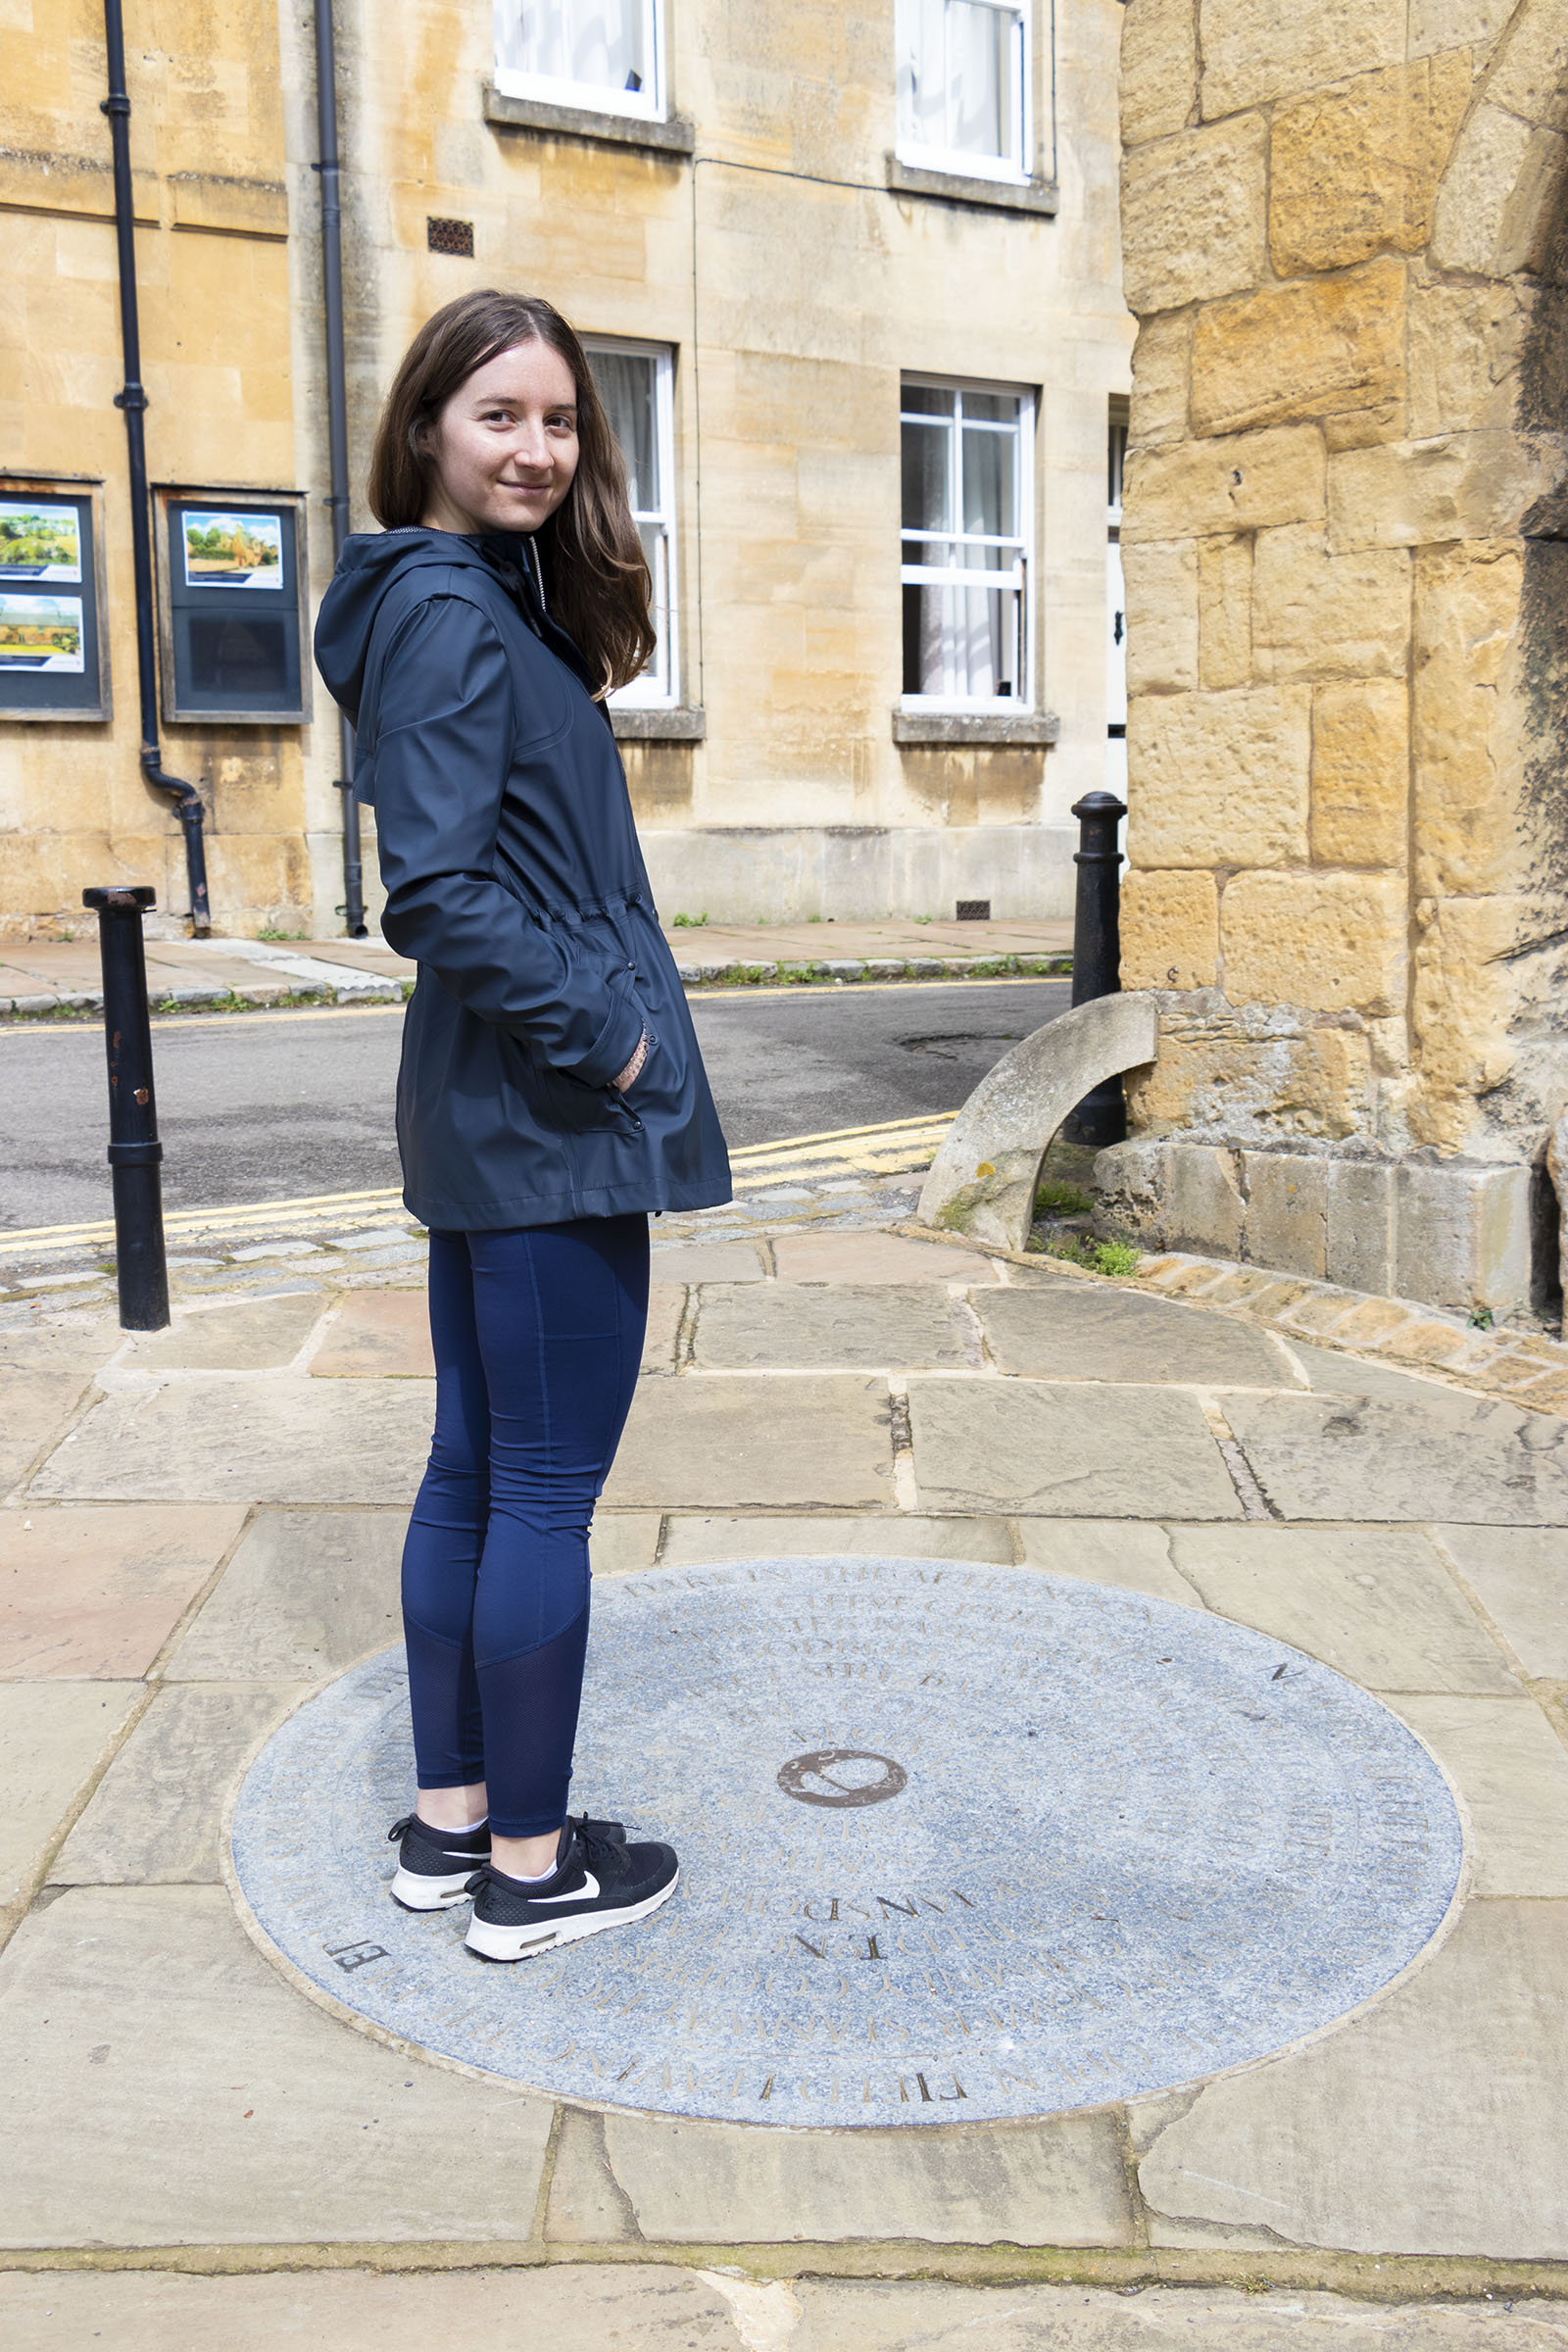 StStart of Cotswold Way in Chipping Campden